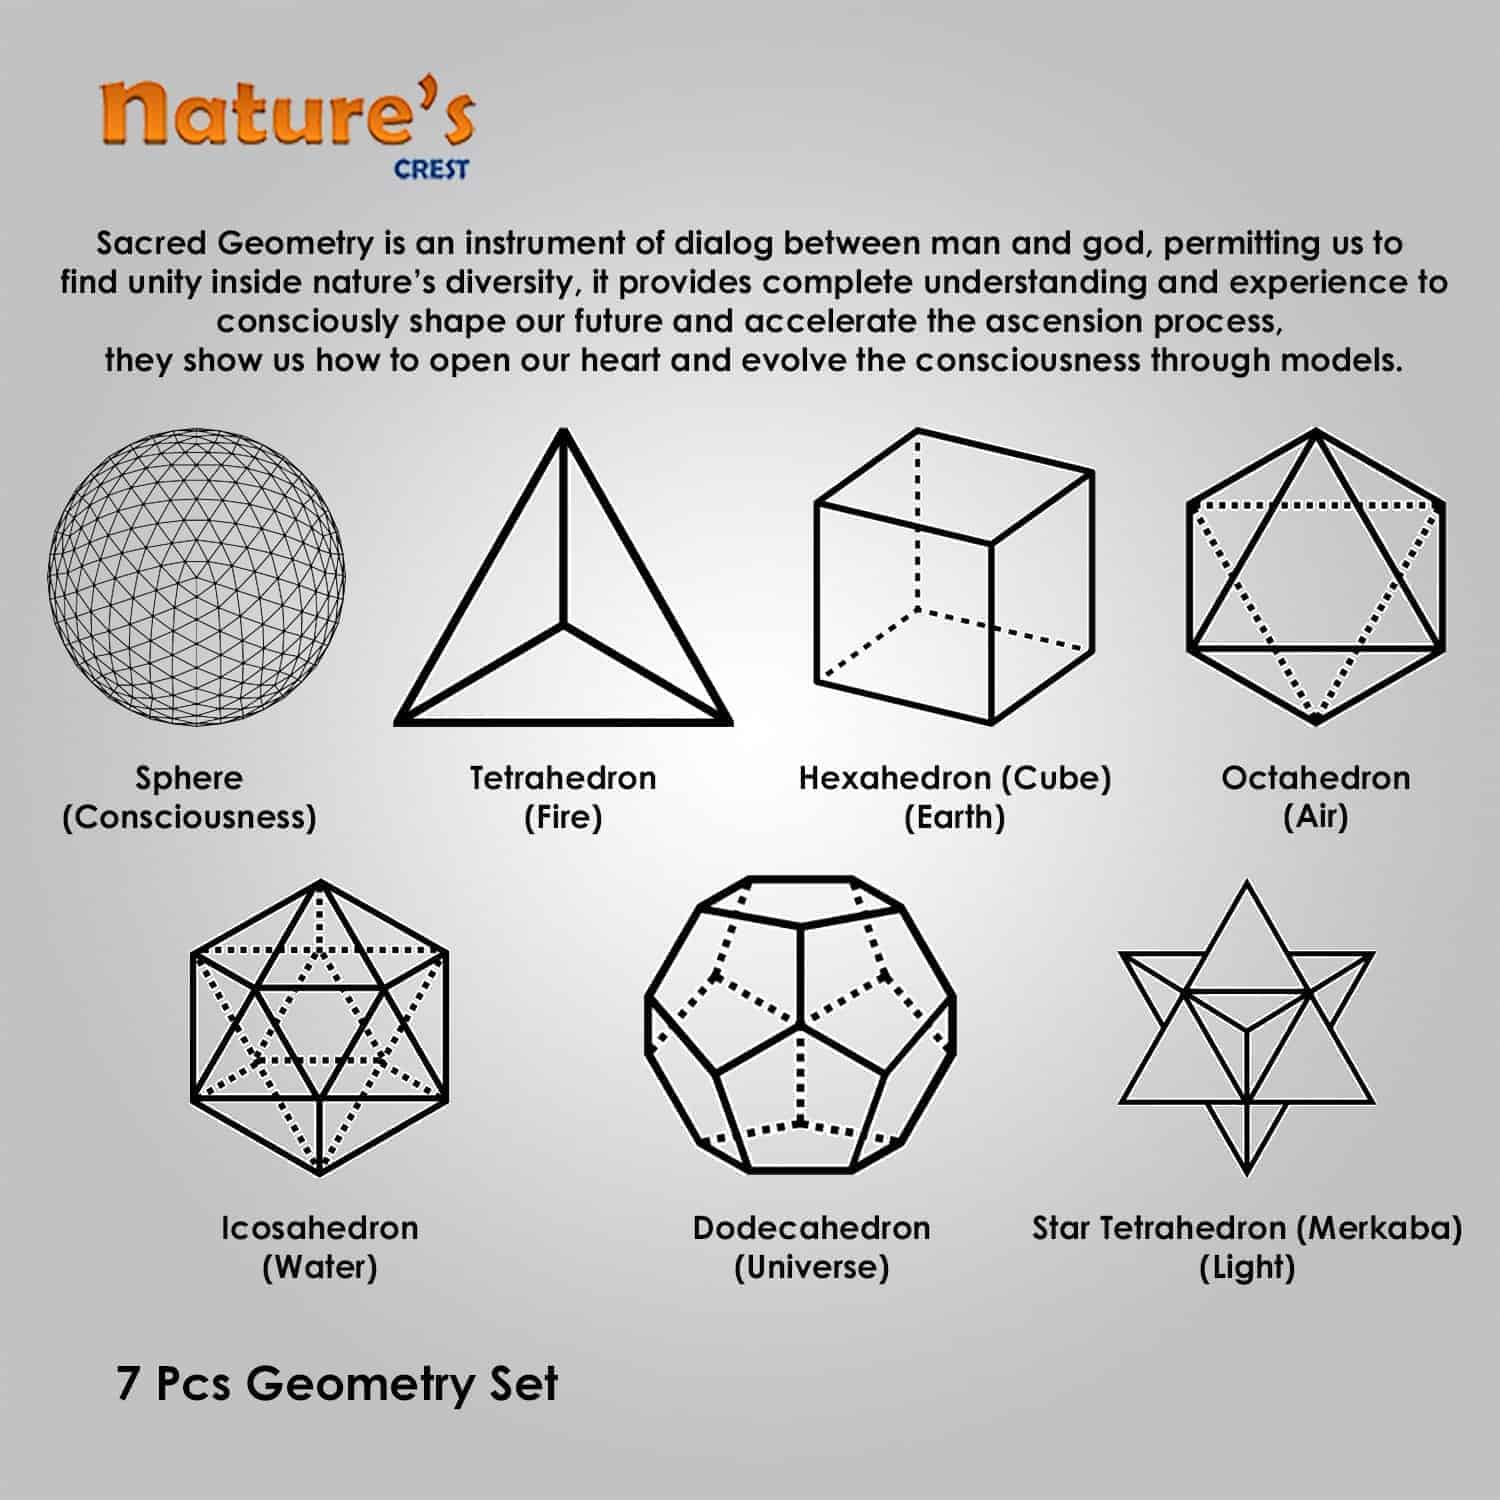 Crystal Quartz (Sphatik) Platonic Solids 7 Pcs Set Sacret Geometry Set Nature's Crest GS7001 ₹ 1,399.00